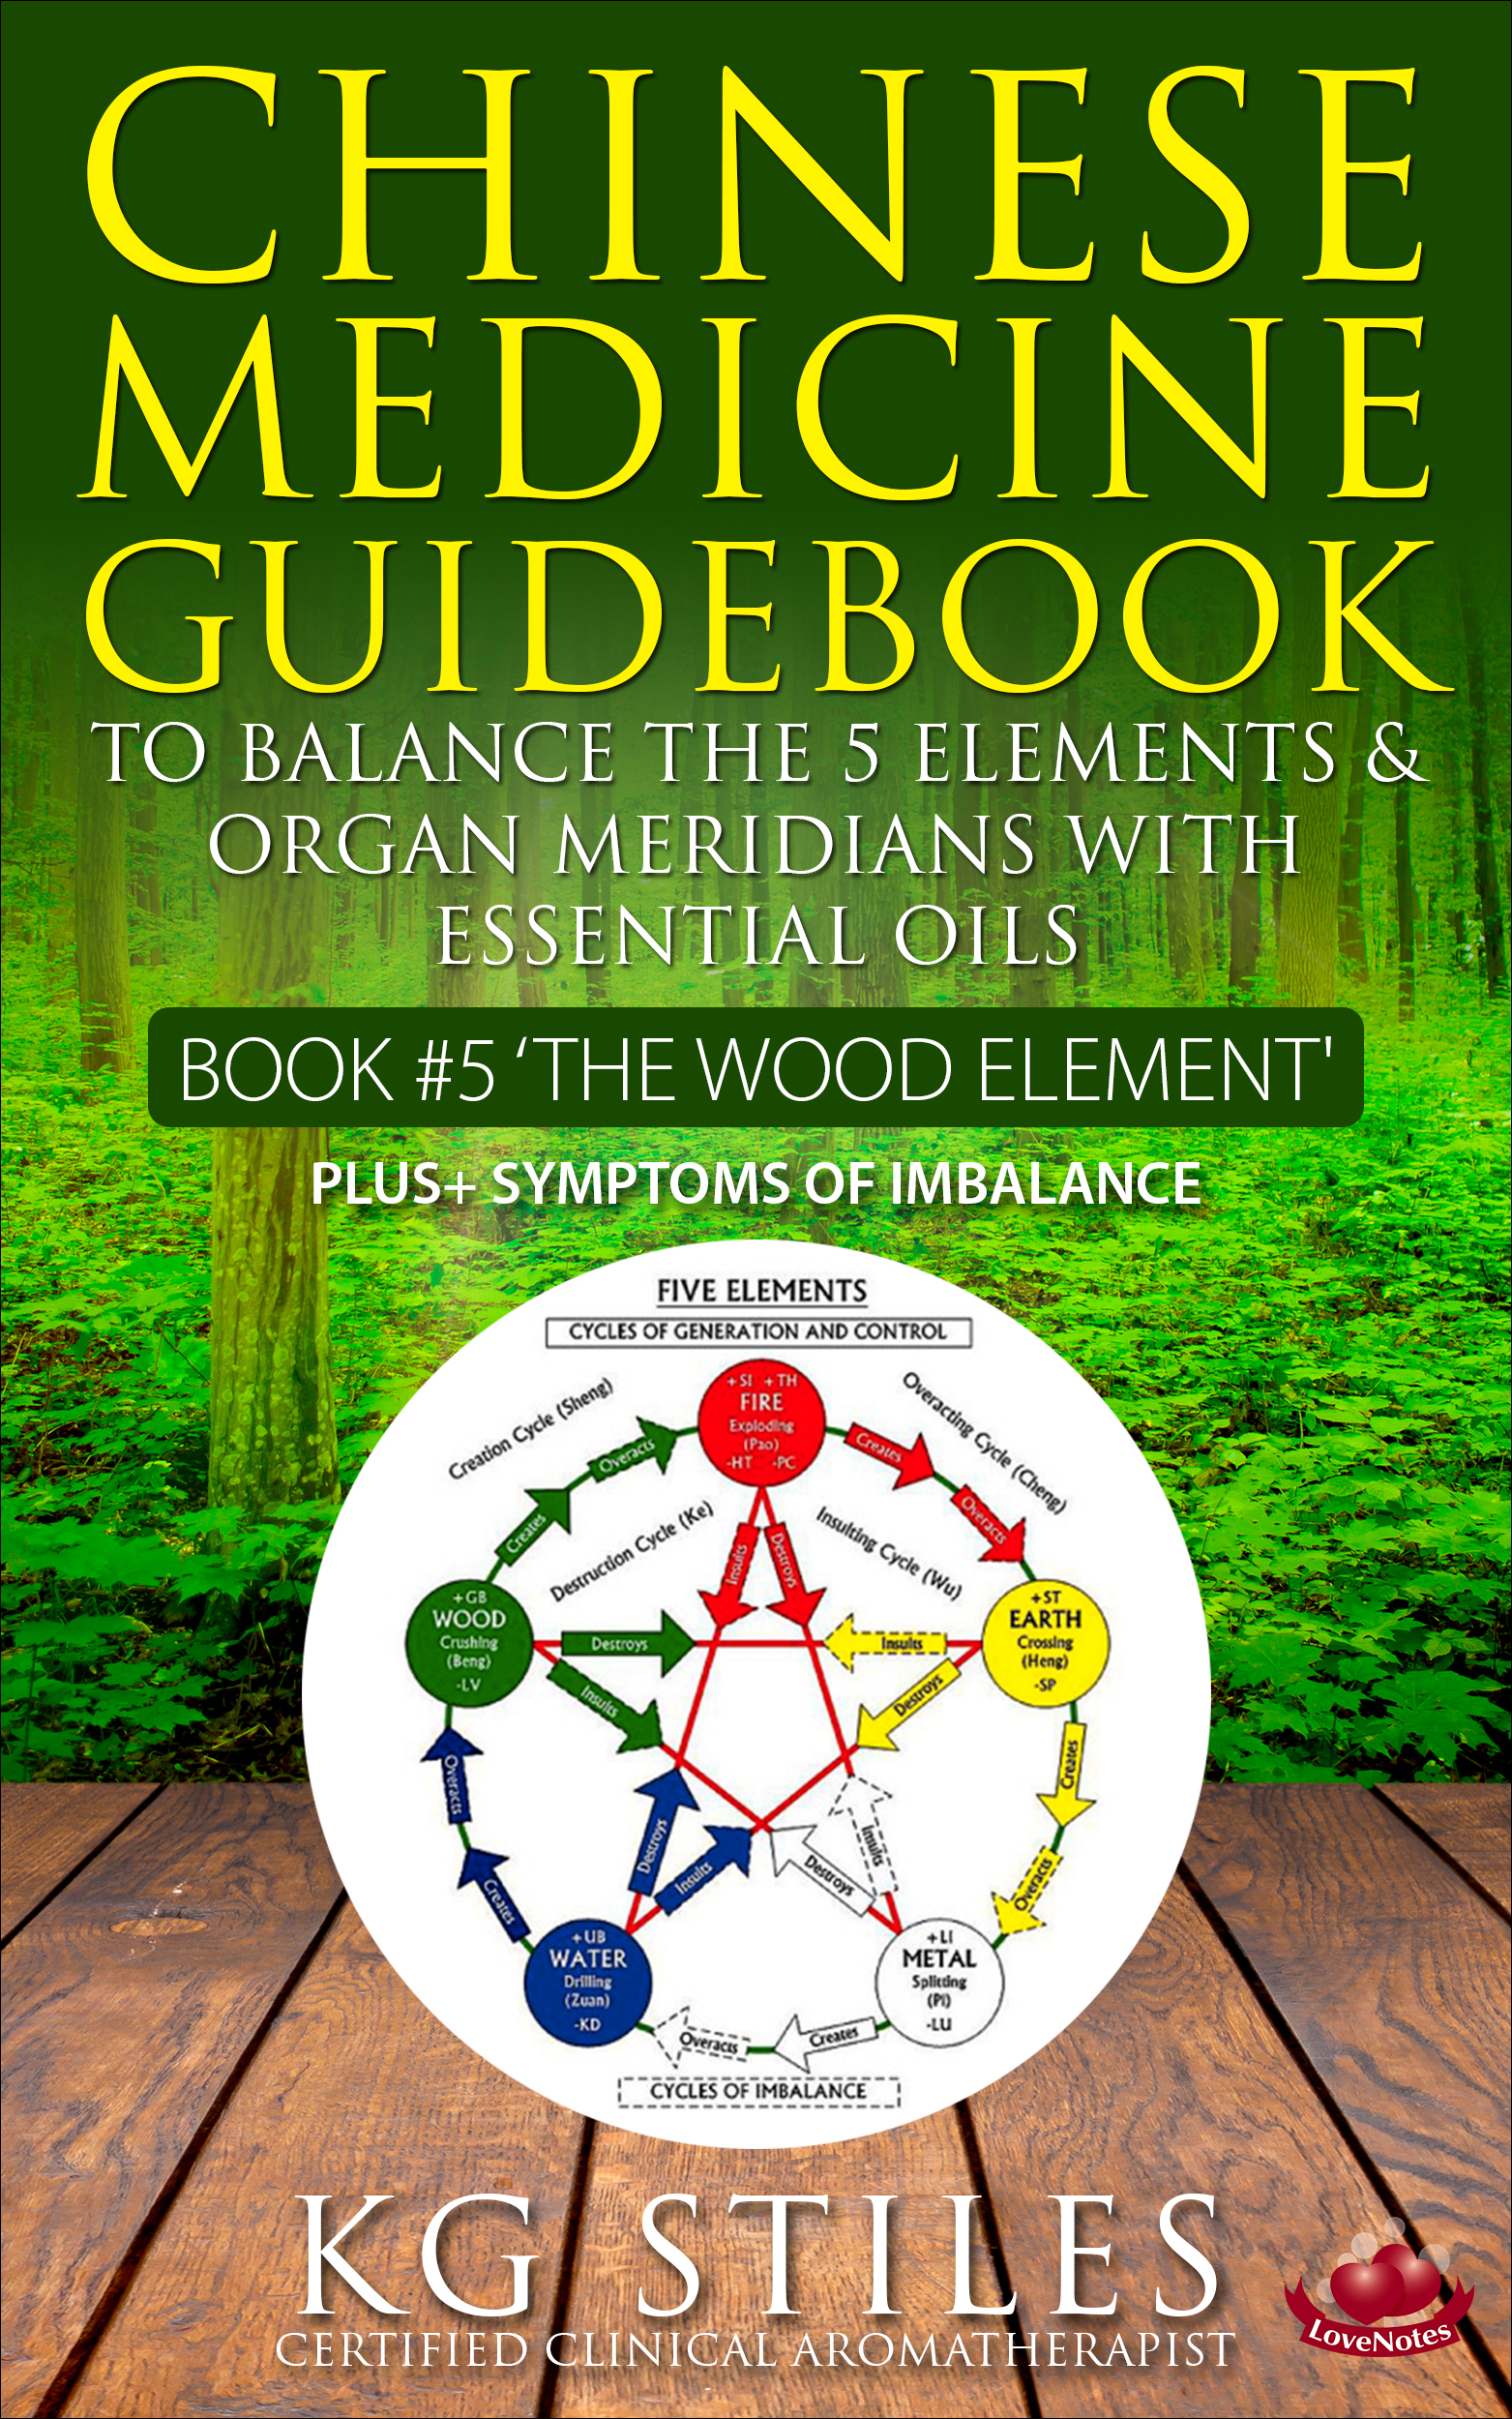 Essential Oils to Balance the Wood Element & Organ Meridians